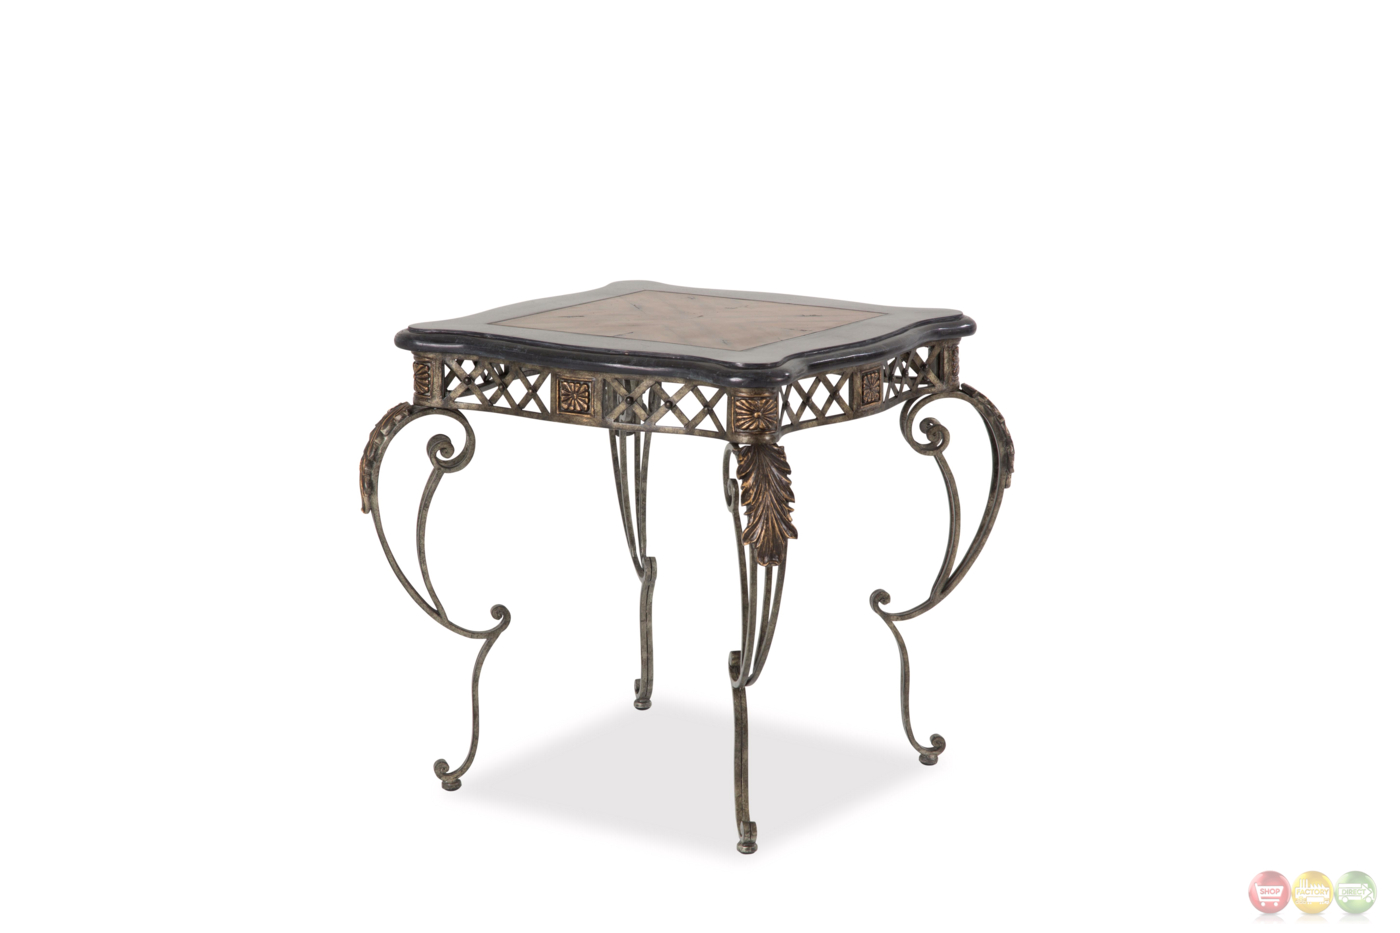 Sanchez traditional end table with wood top decorative metal base - Decorative metal table bases ...